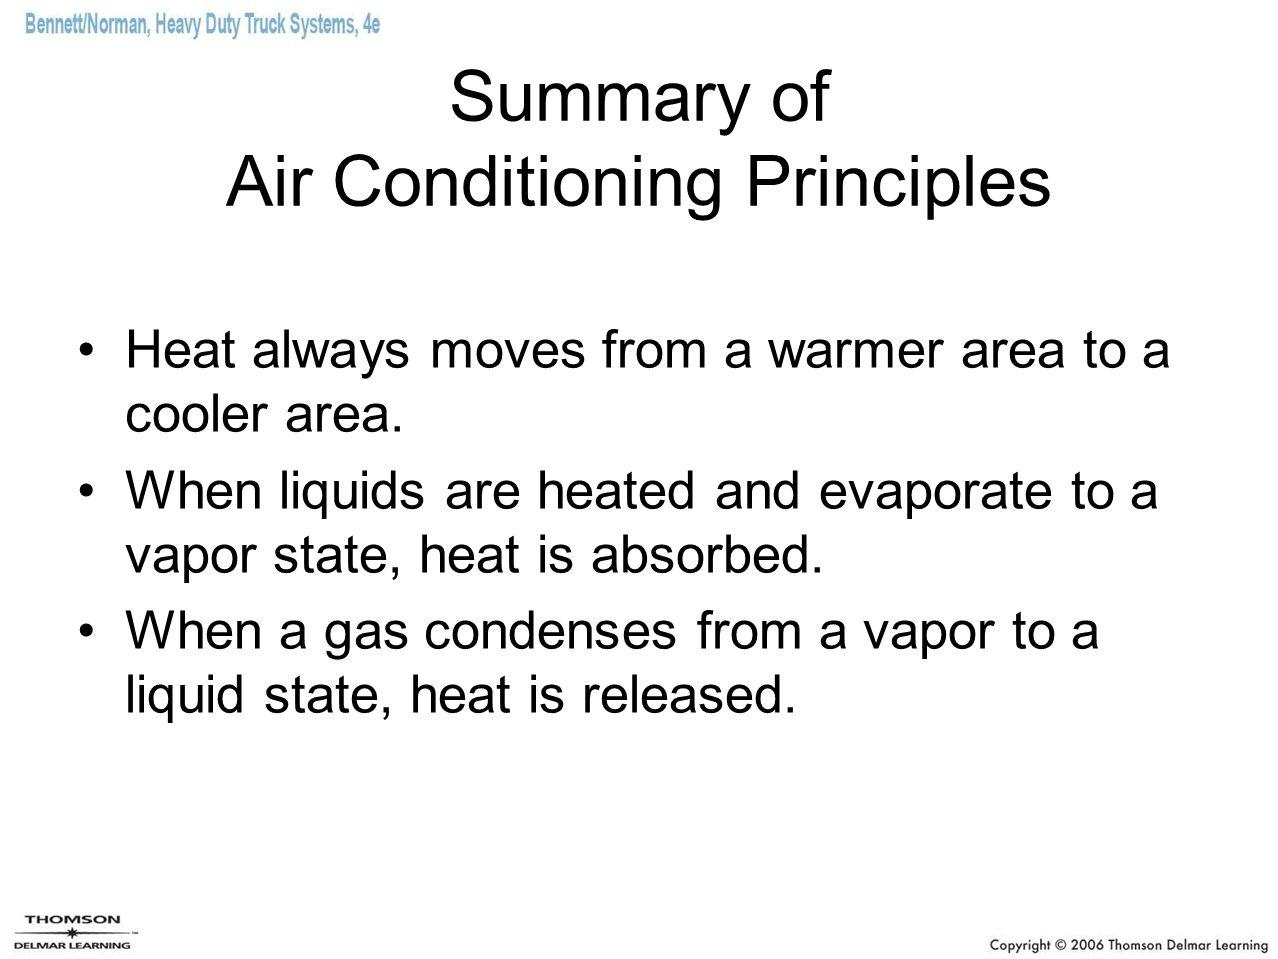 Summary of Air Conditioning Principles